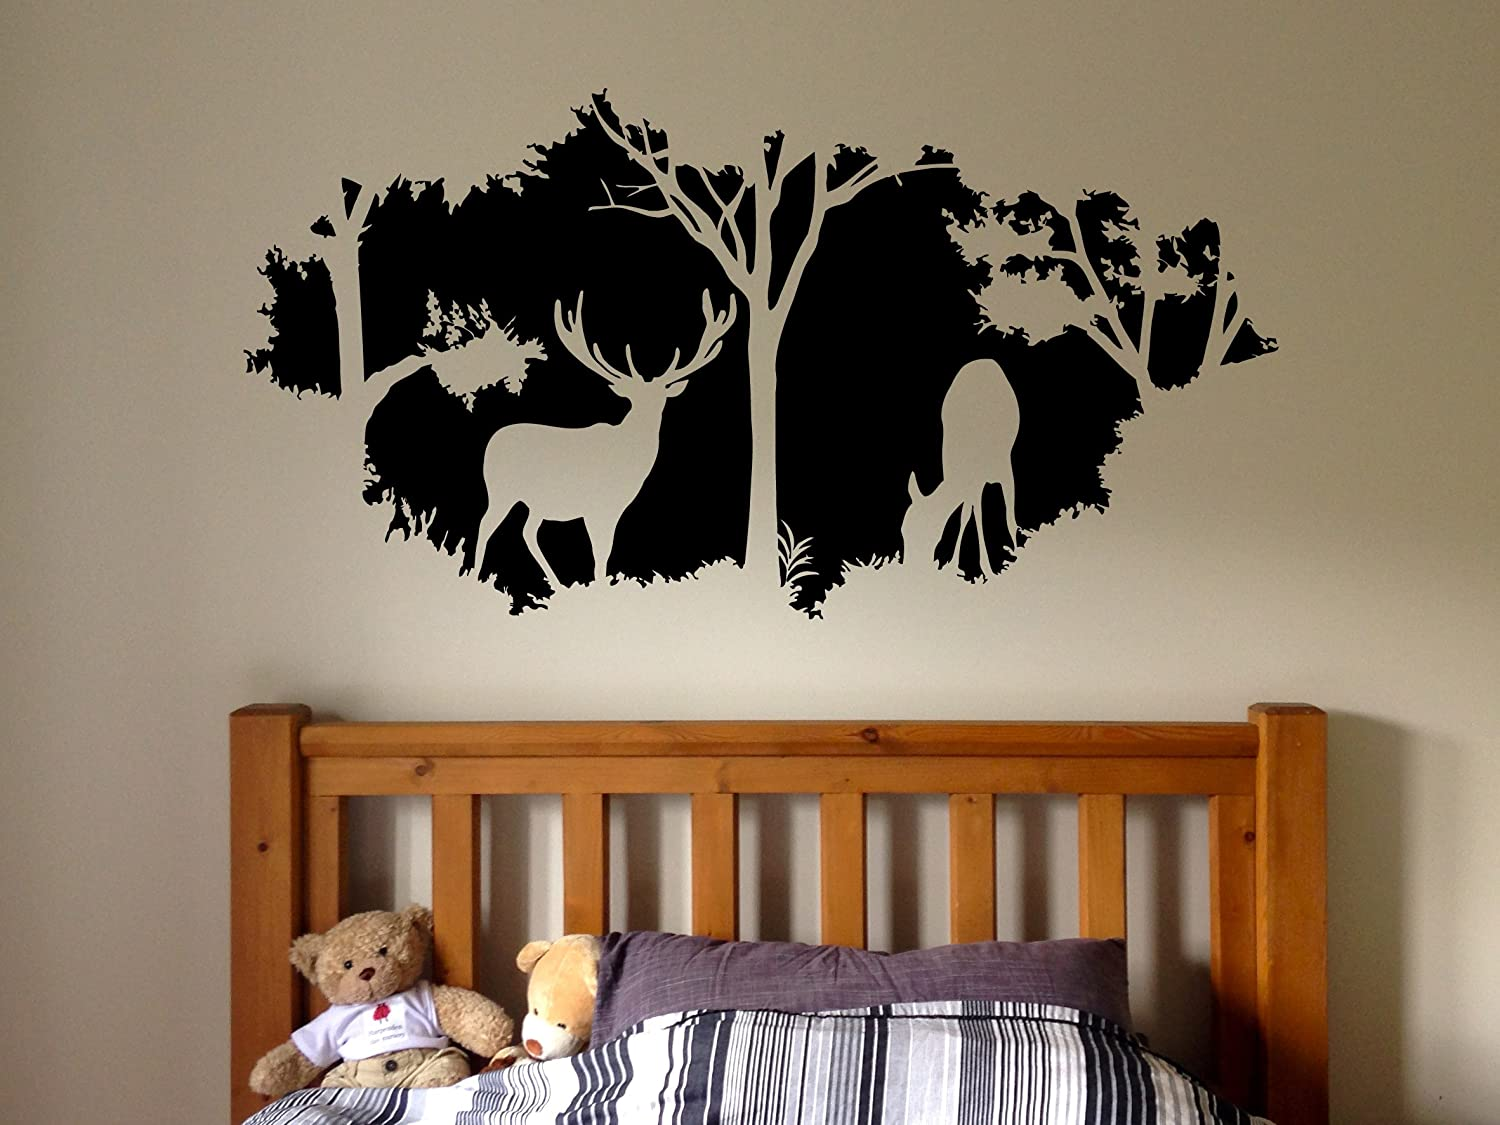 Amazon Com Wall Window Sticker Decal Deer Forest Elk Animal Horns Country Hunting Gun Hunter Boys Bedroom 1286b Baby